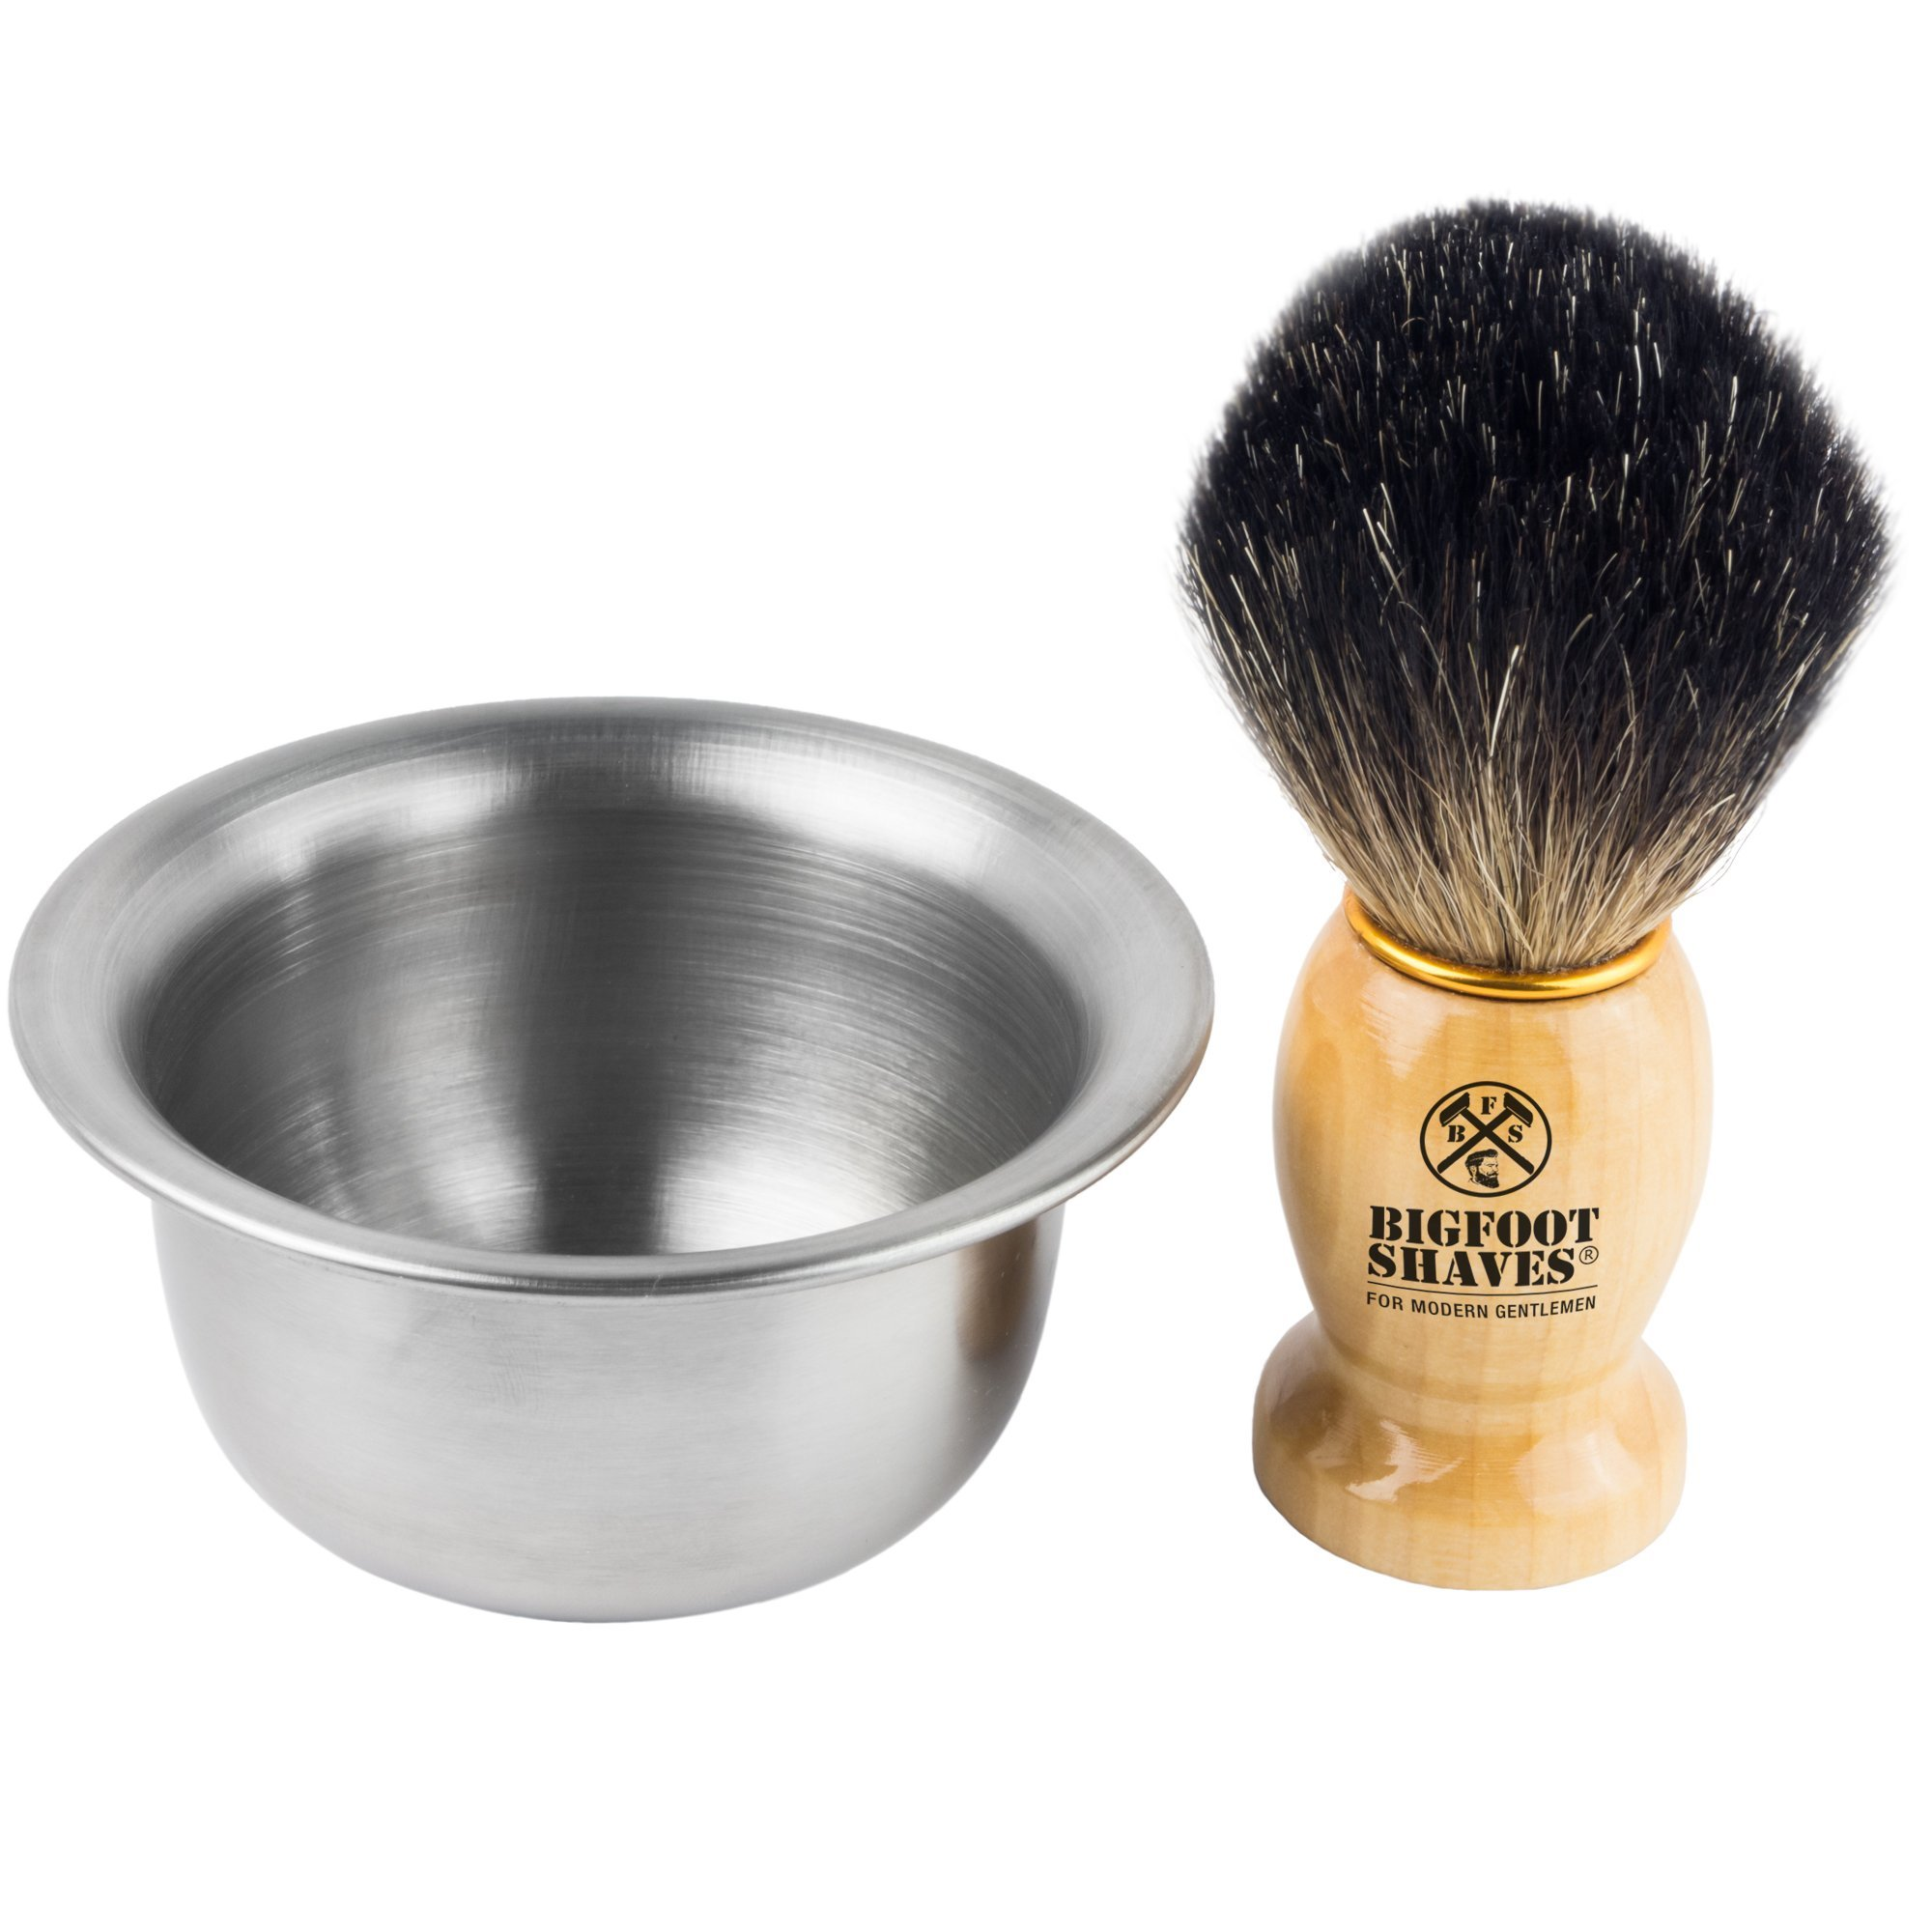 100% Pure Badger Shaving Brush and Bowl. For Guaranteed Best Shave of Your Life. Use for Old Fashioned Double Edge Safety Razor or Multi Blade Razor - Made for Modern Gentlemen